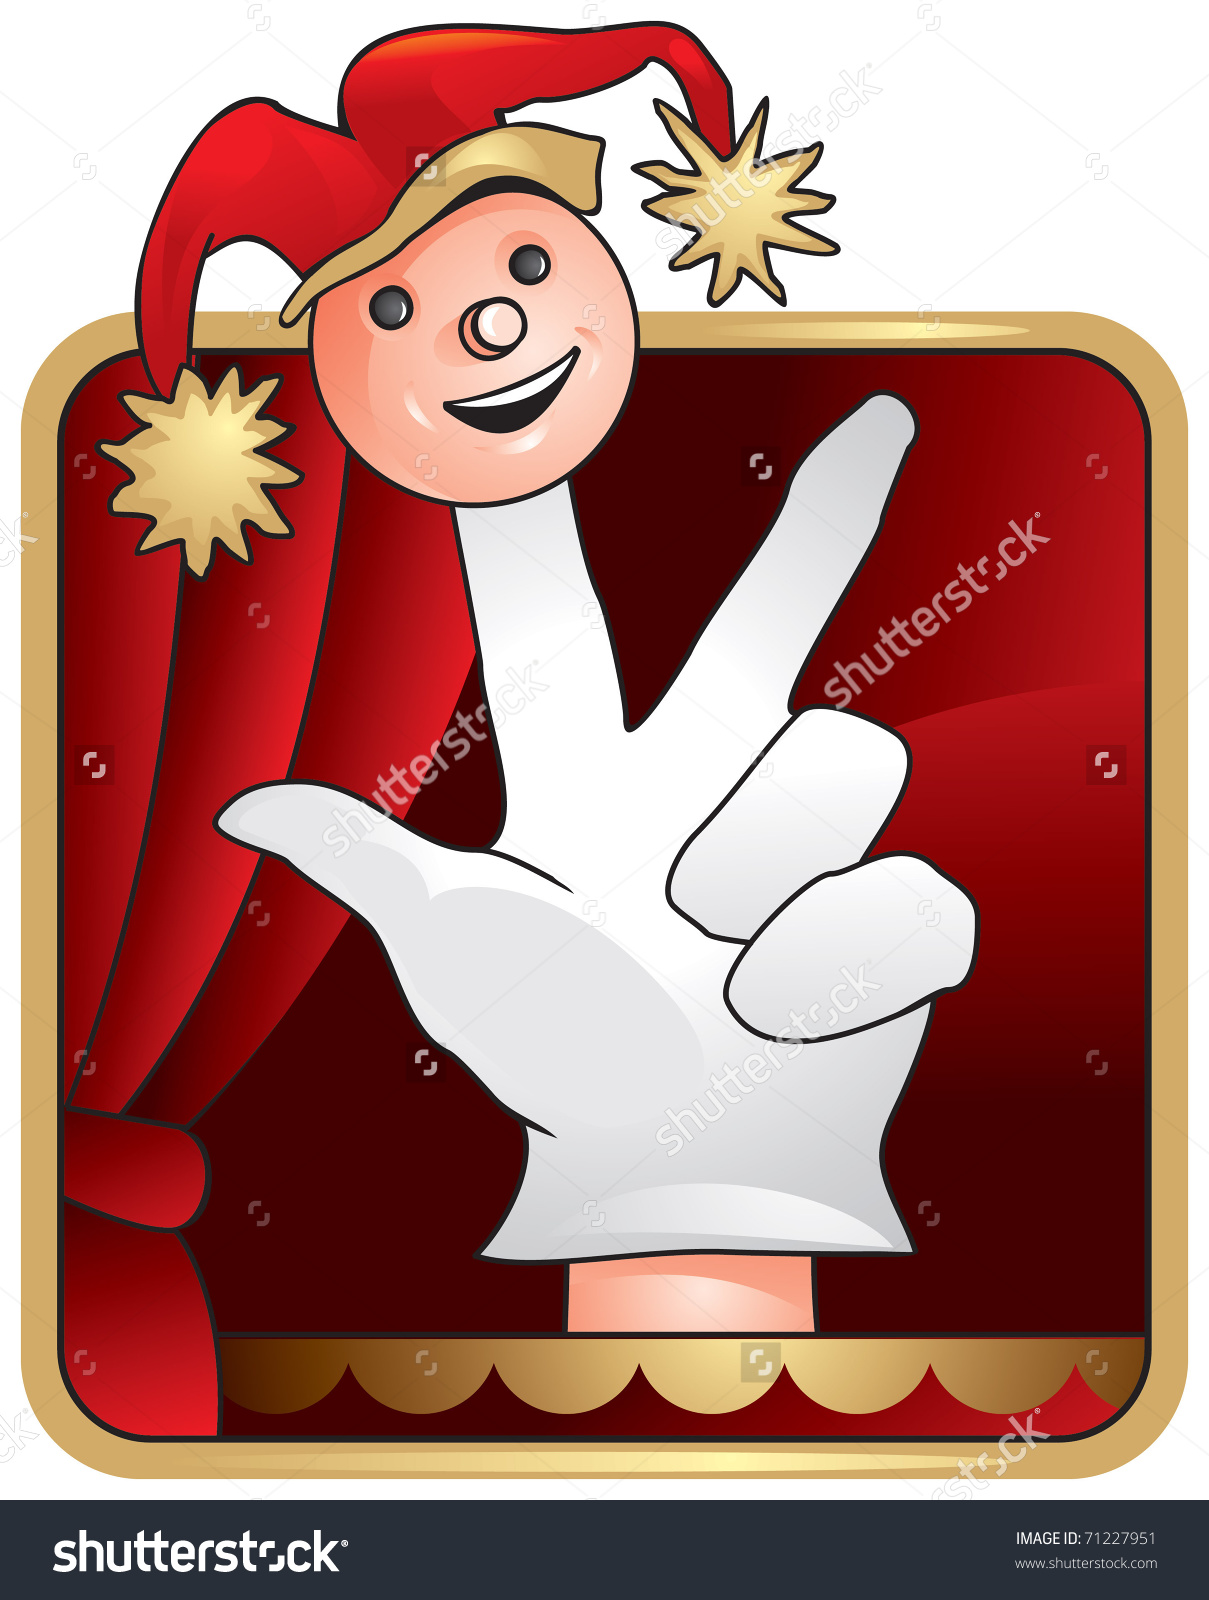 Puppet Theatre Vector Icon Puppetry Puppet Stock Vector 71227951.